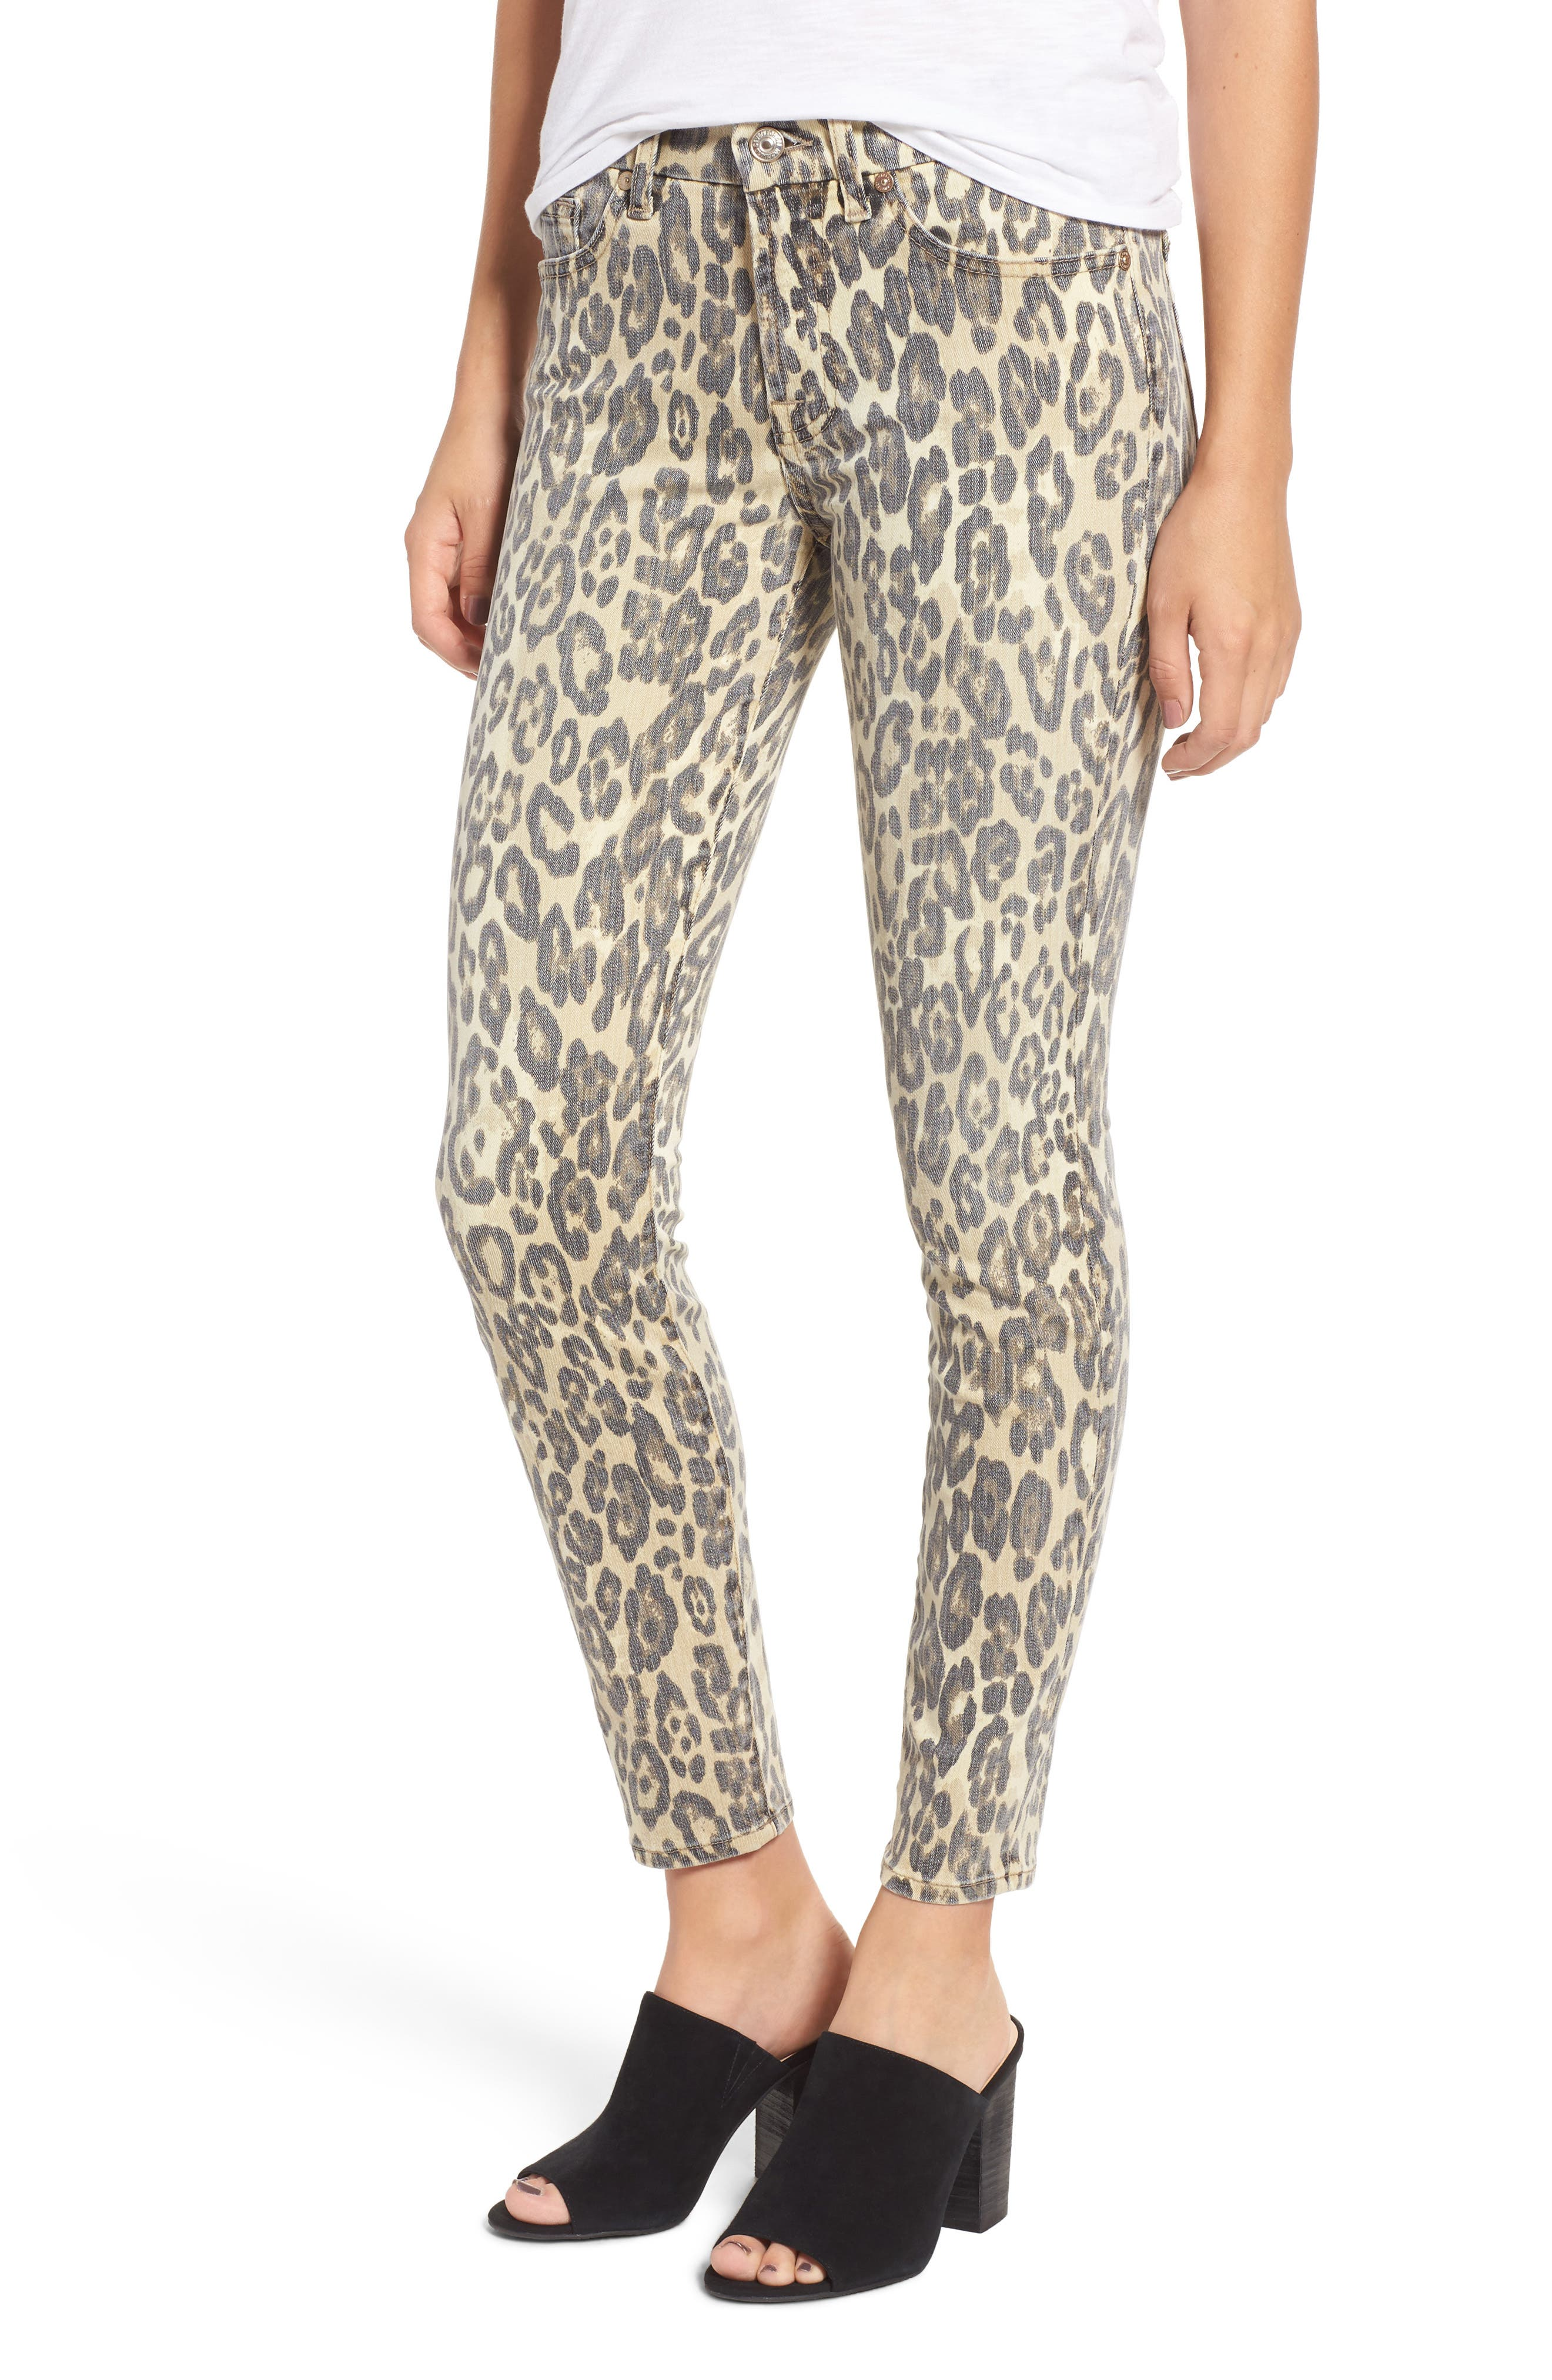 7 For All Mankind The Ankle Skinny Jeans (Cheetah)